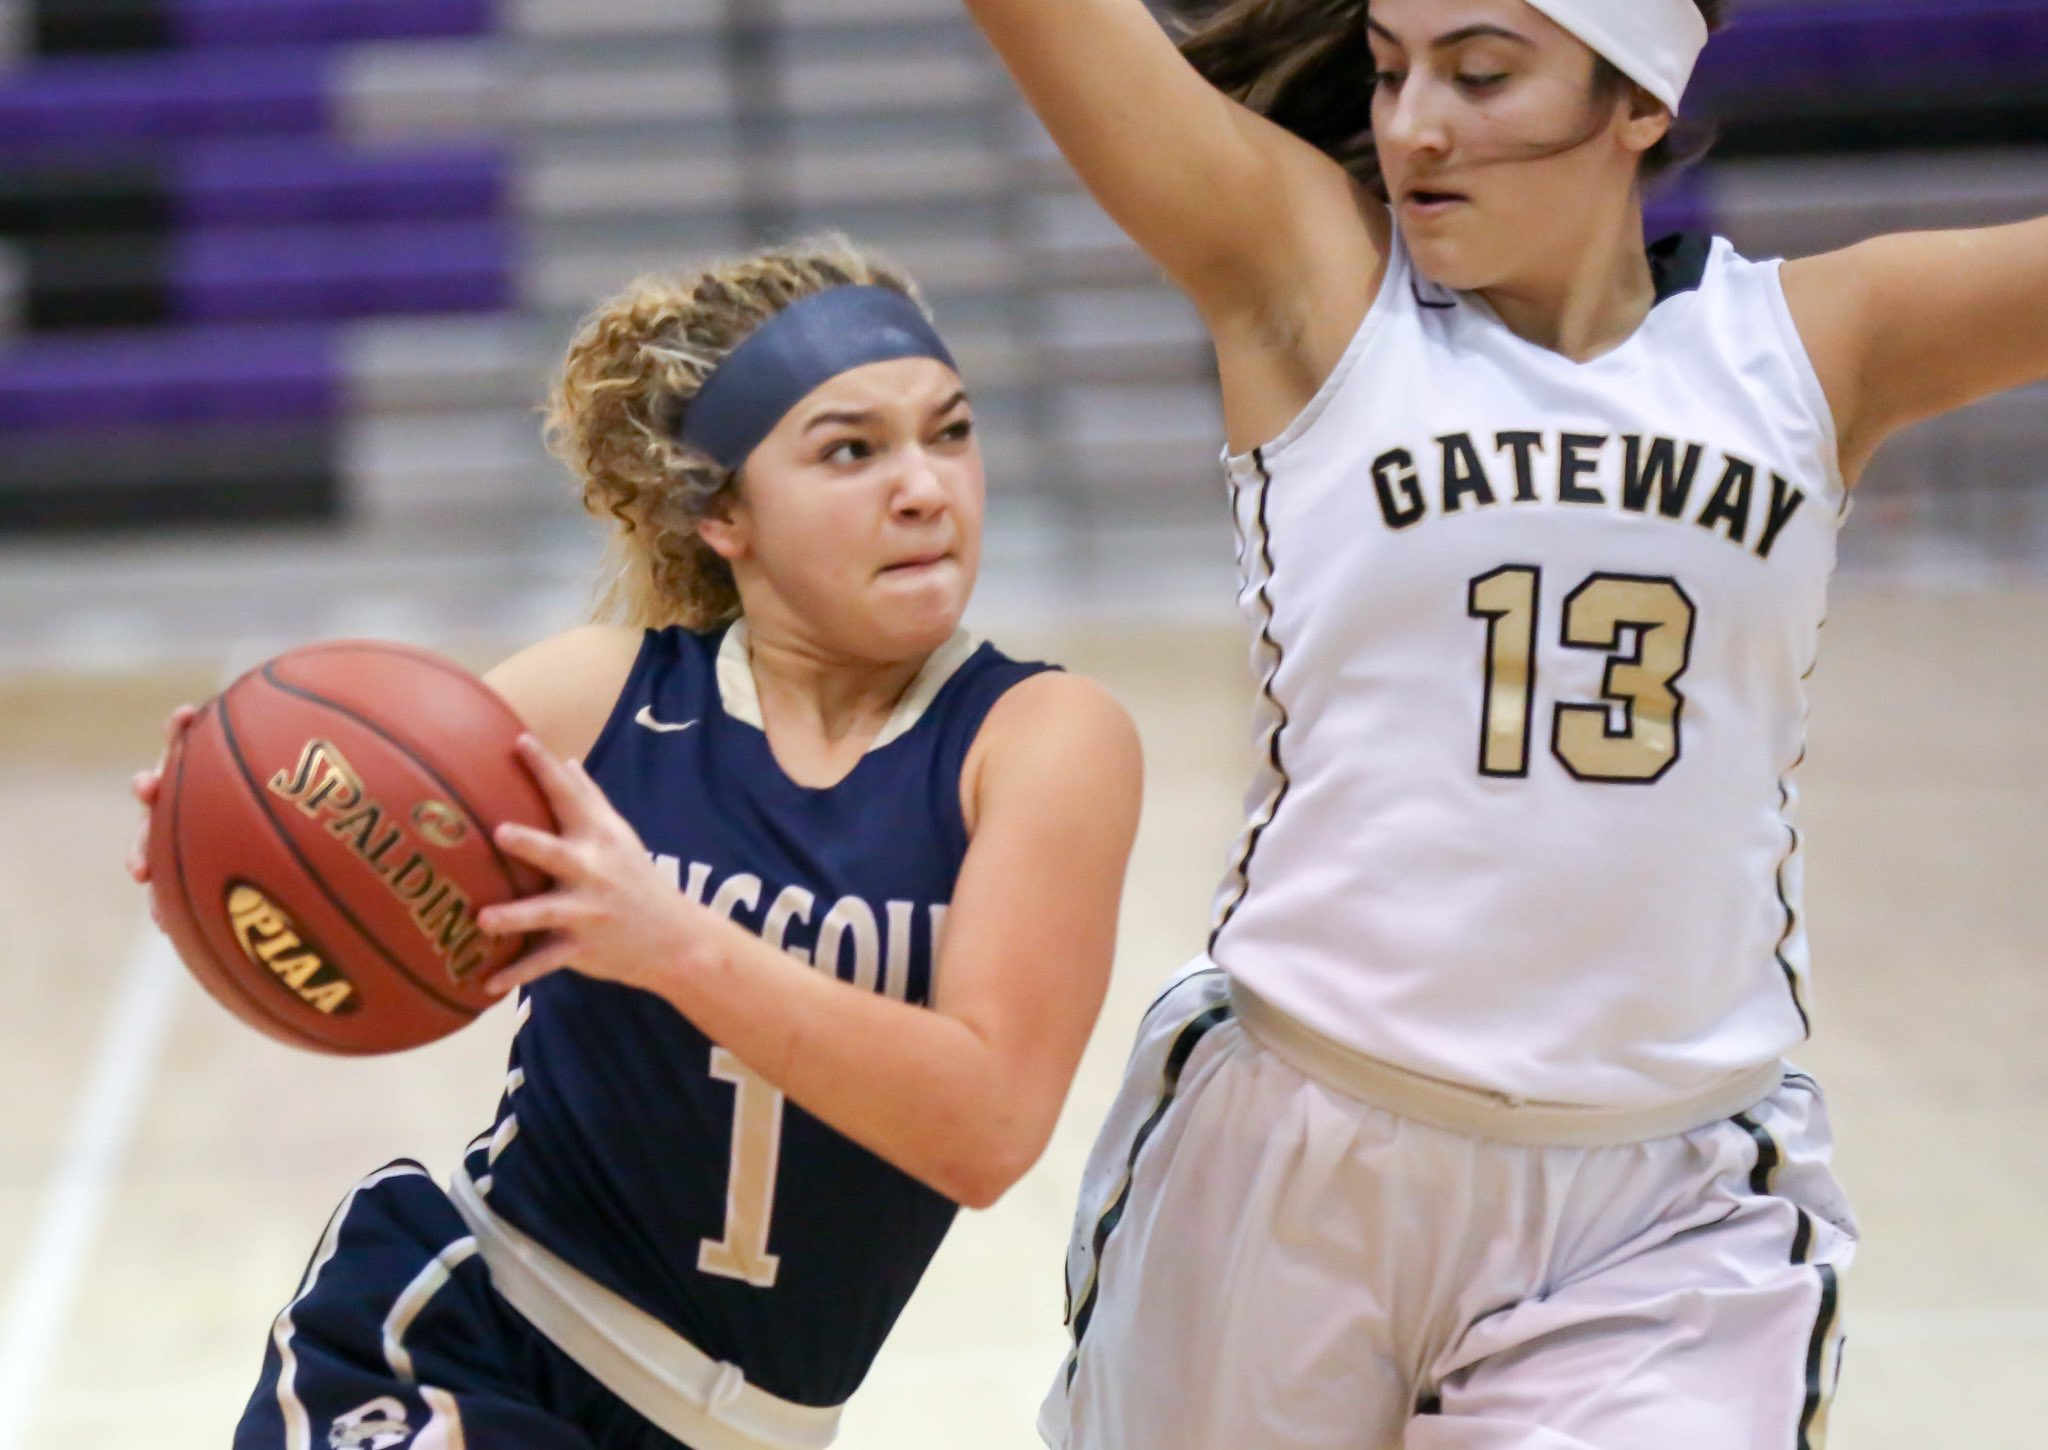 Lady Rams' season ends with loss to Gateway